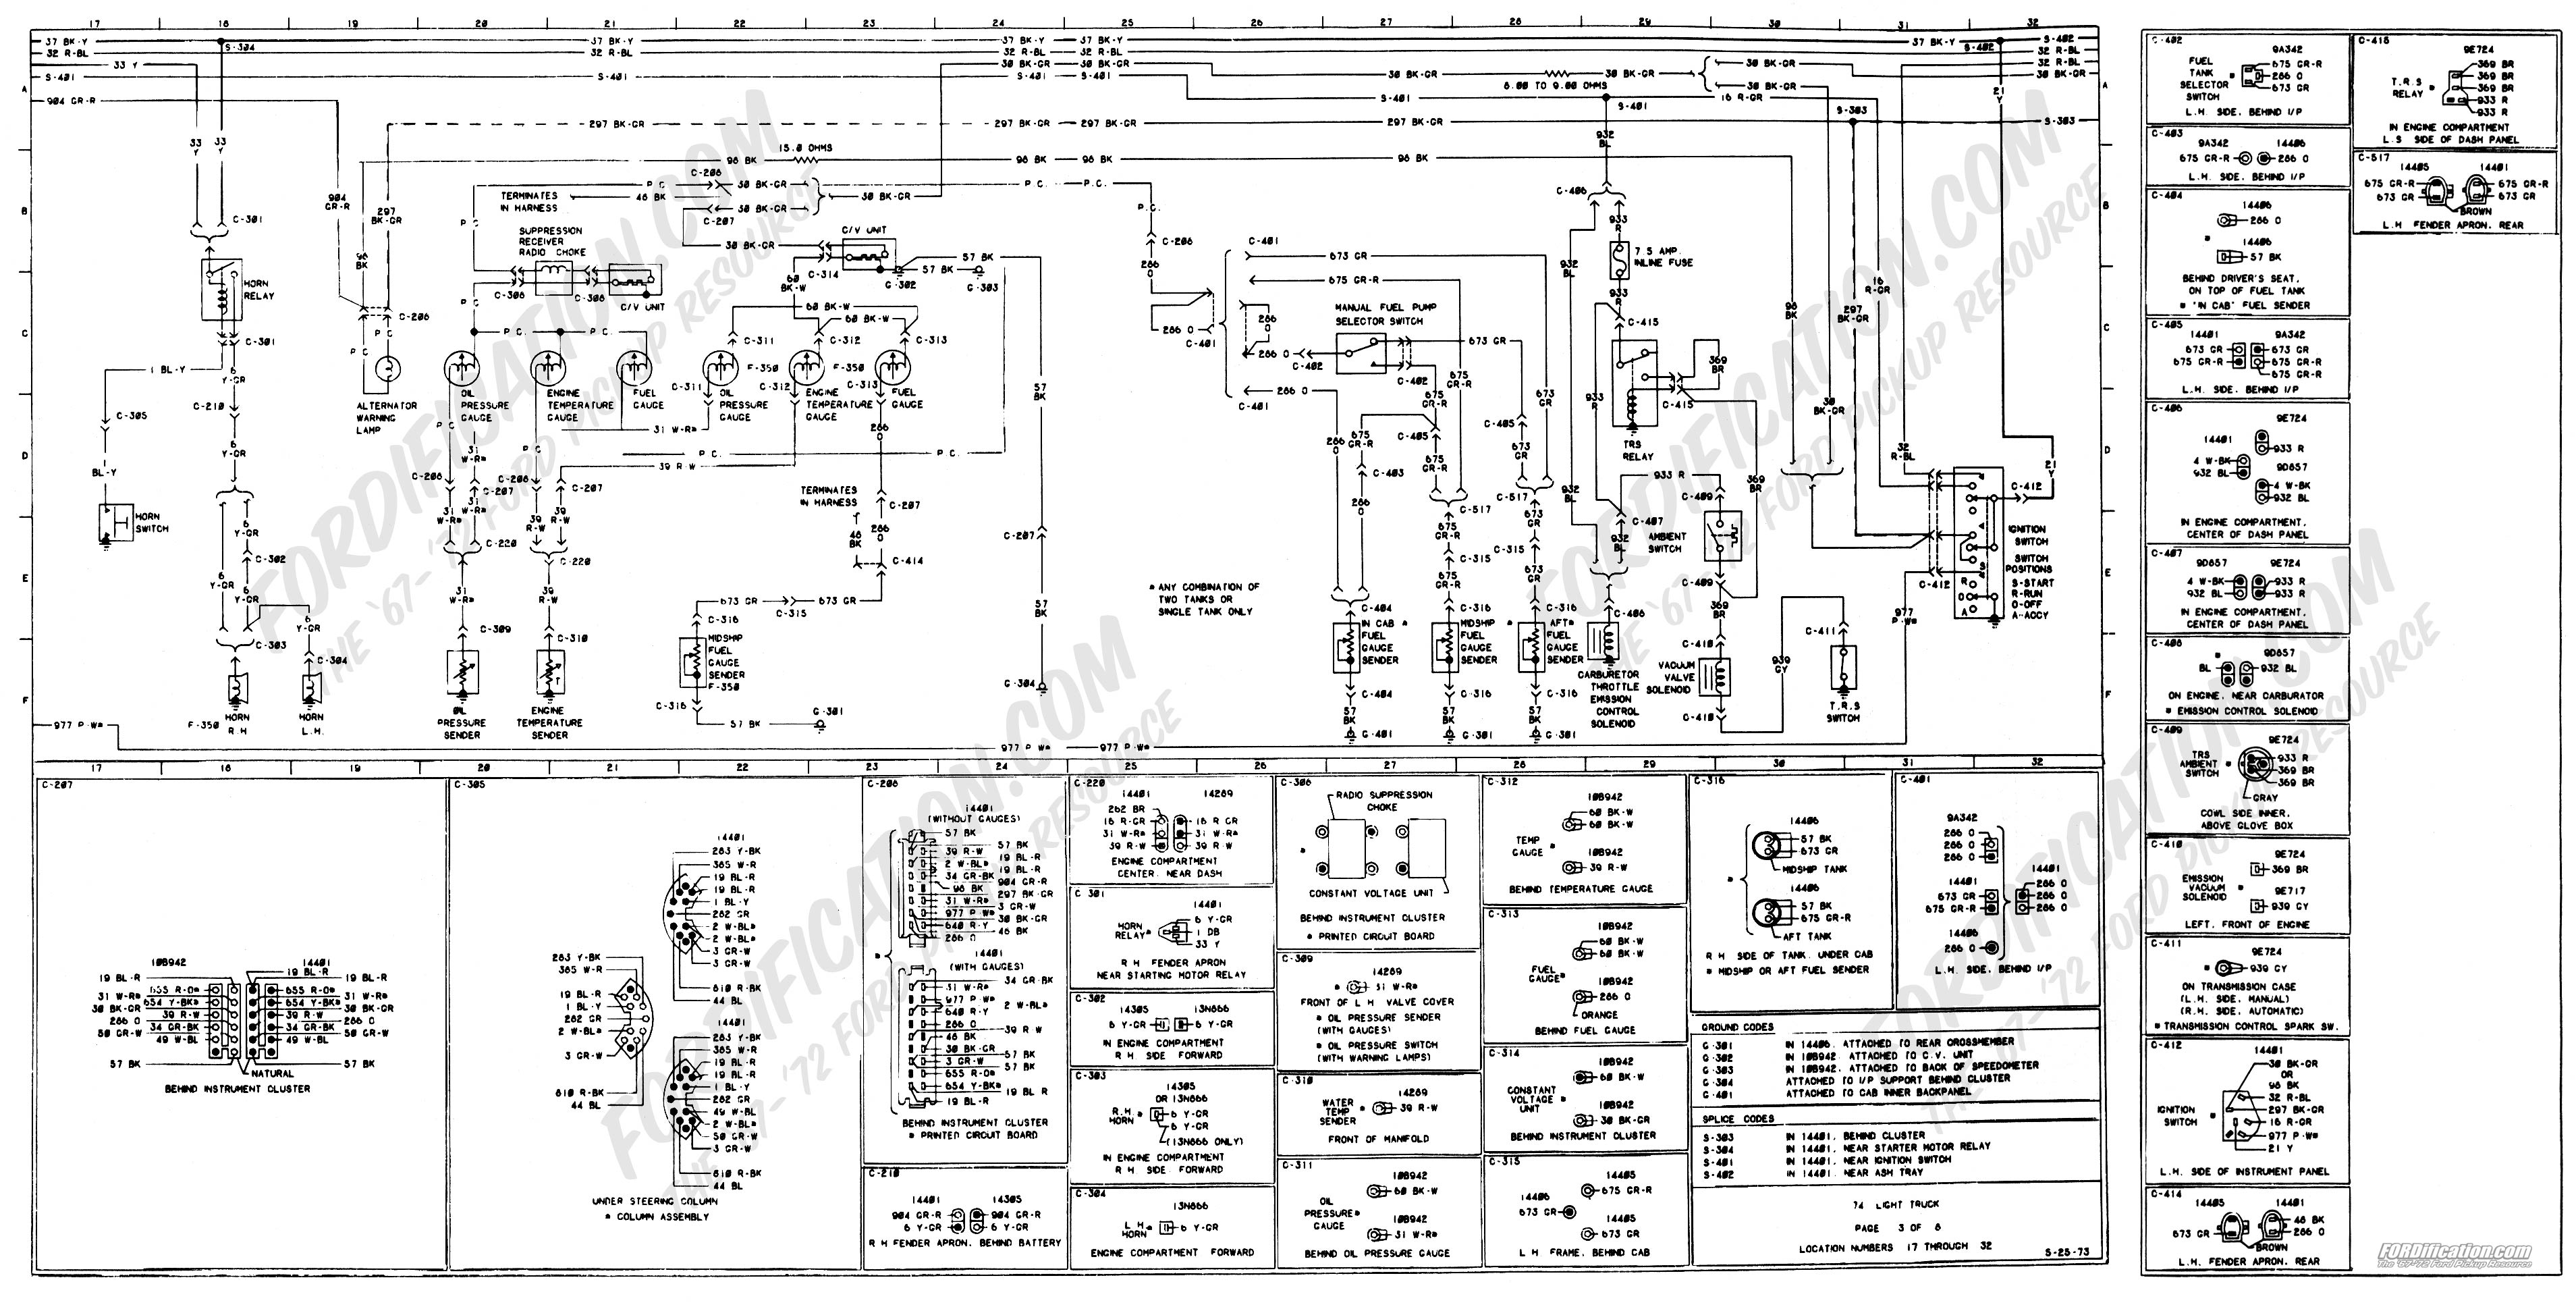 Ficm Wiring Diagram Trusted Schematics Diagrams 04 Ford F 350 U2022 Rh Sivamuni Com 66 Duramax Lly